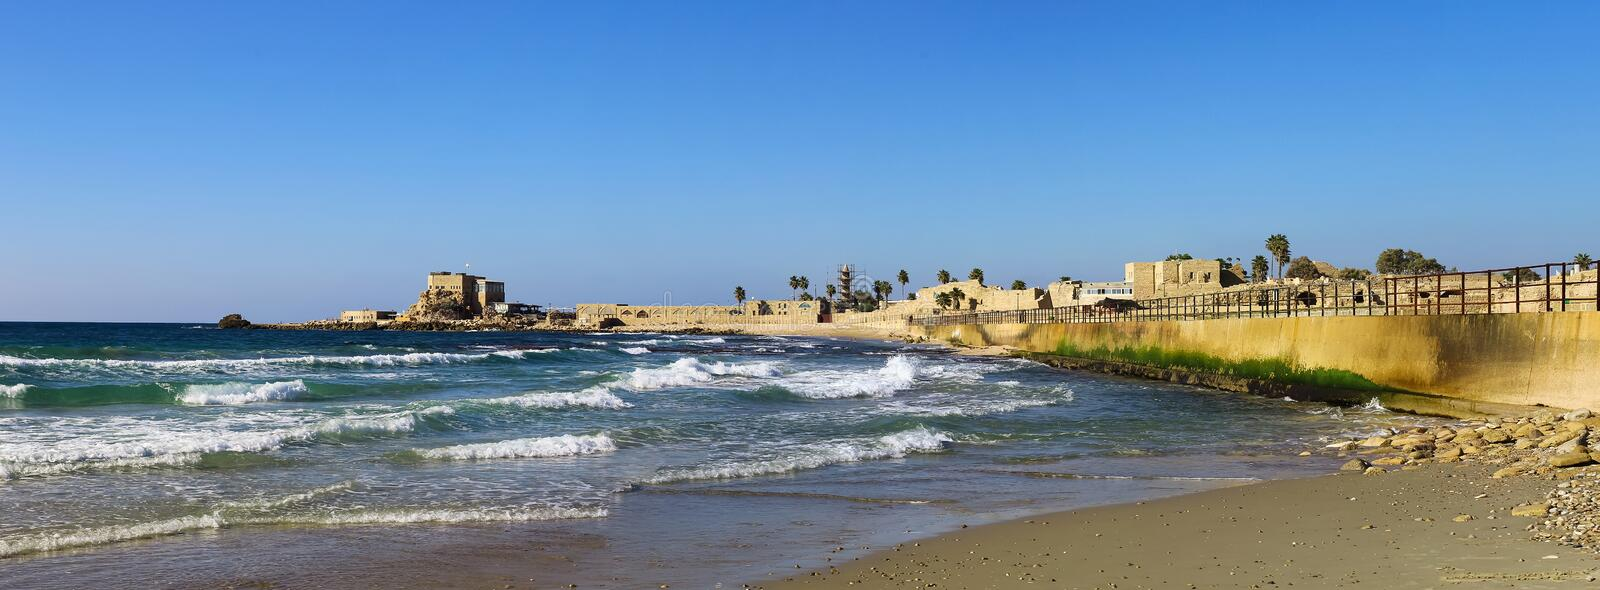 National park Caesarea on the coast of Mediterranean sea, Israel. Panoramic photo in high size stock image